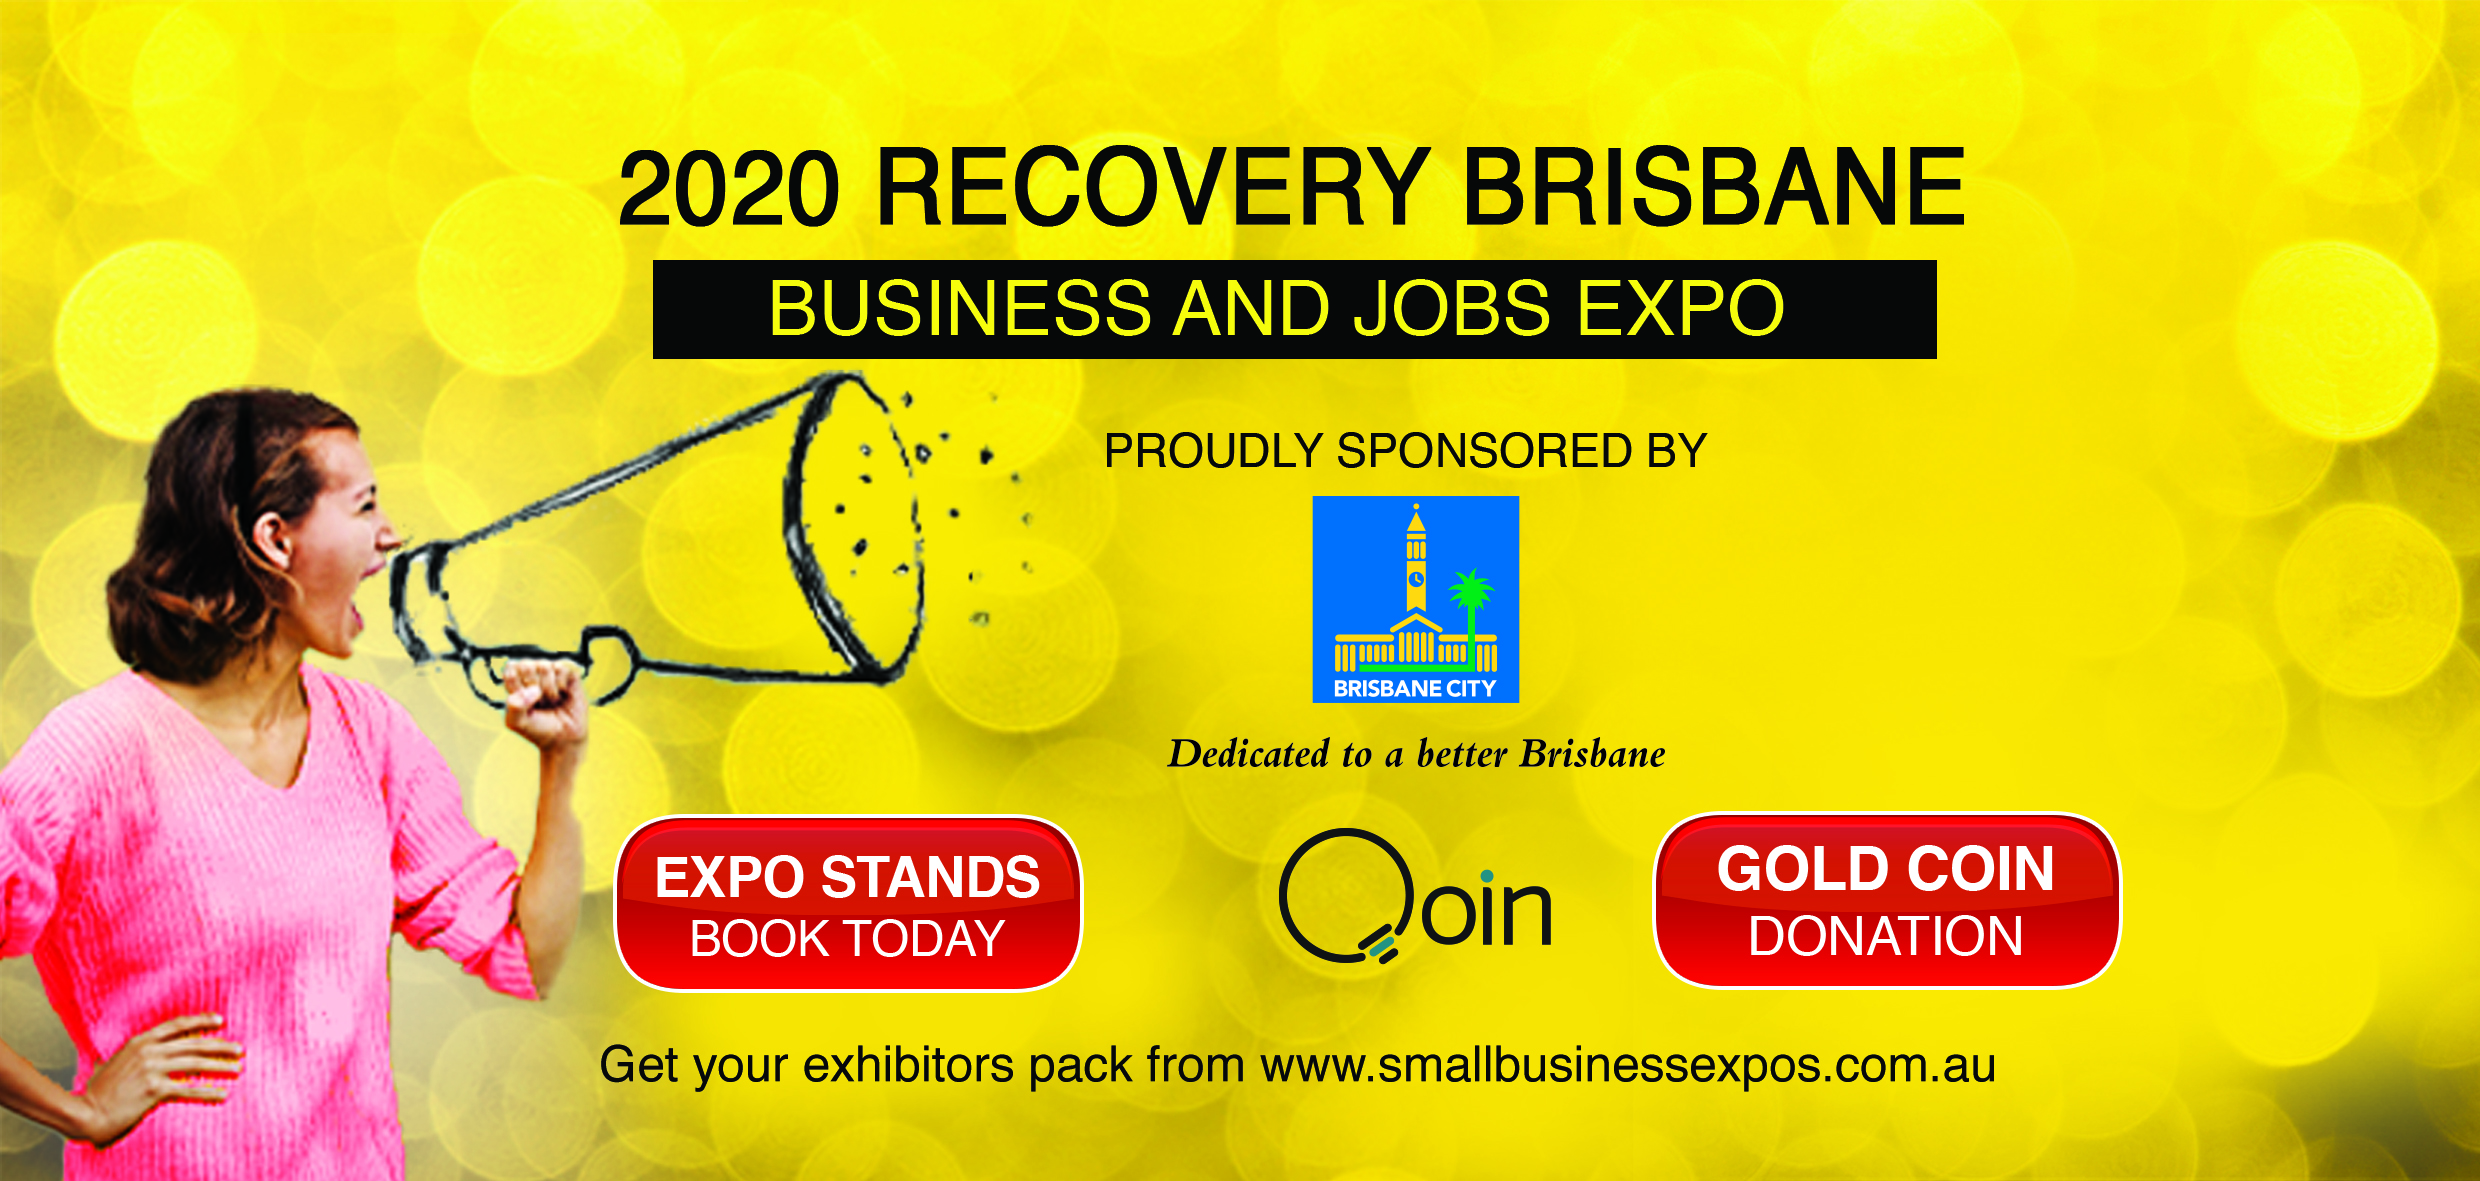 Recovery Brisbane Business and Jobs Expo